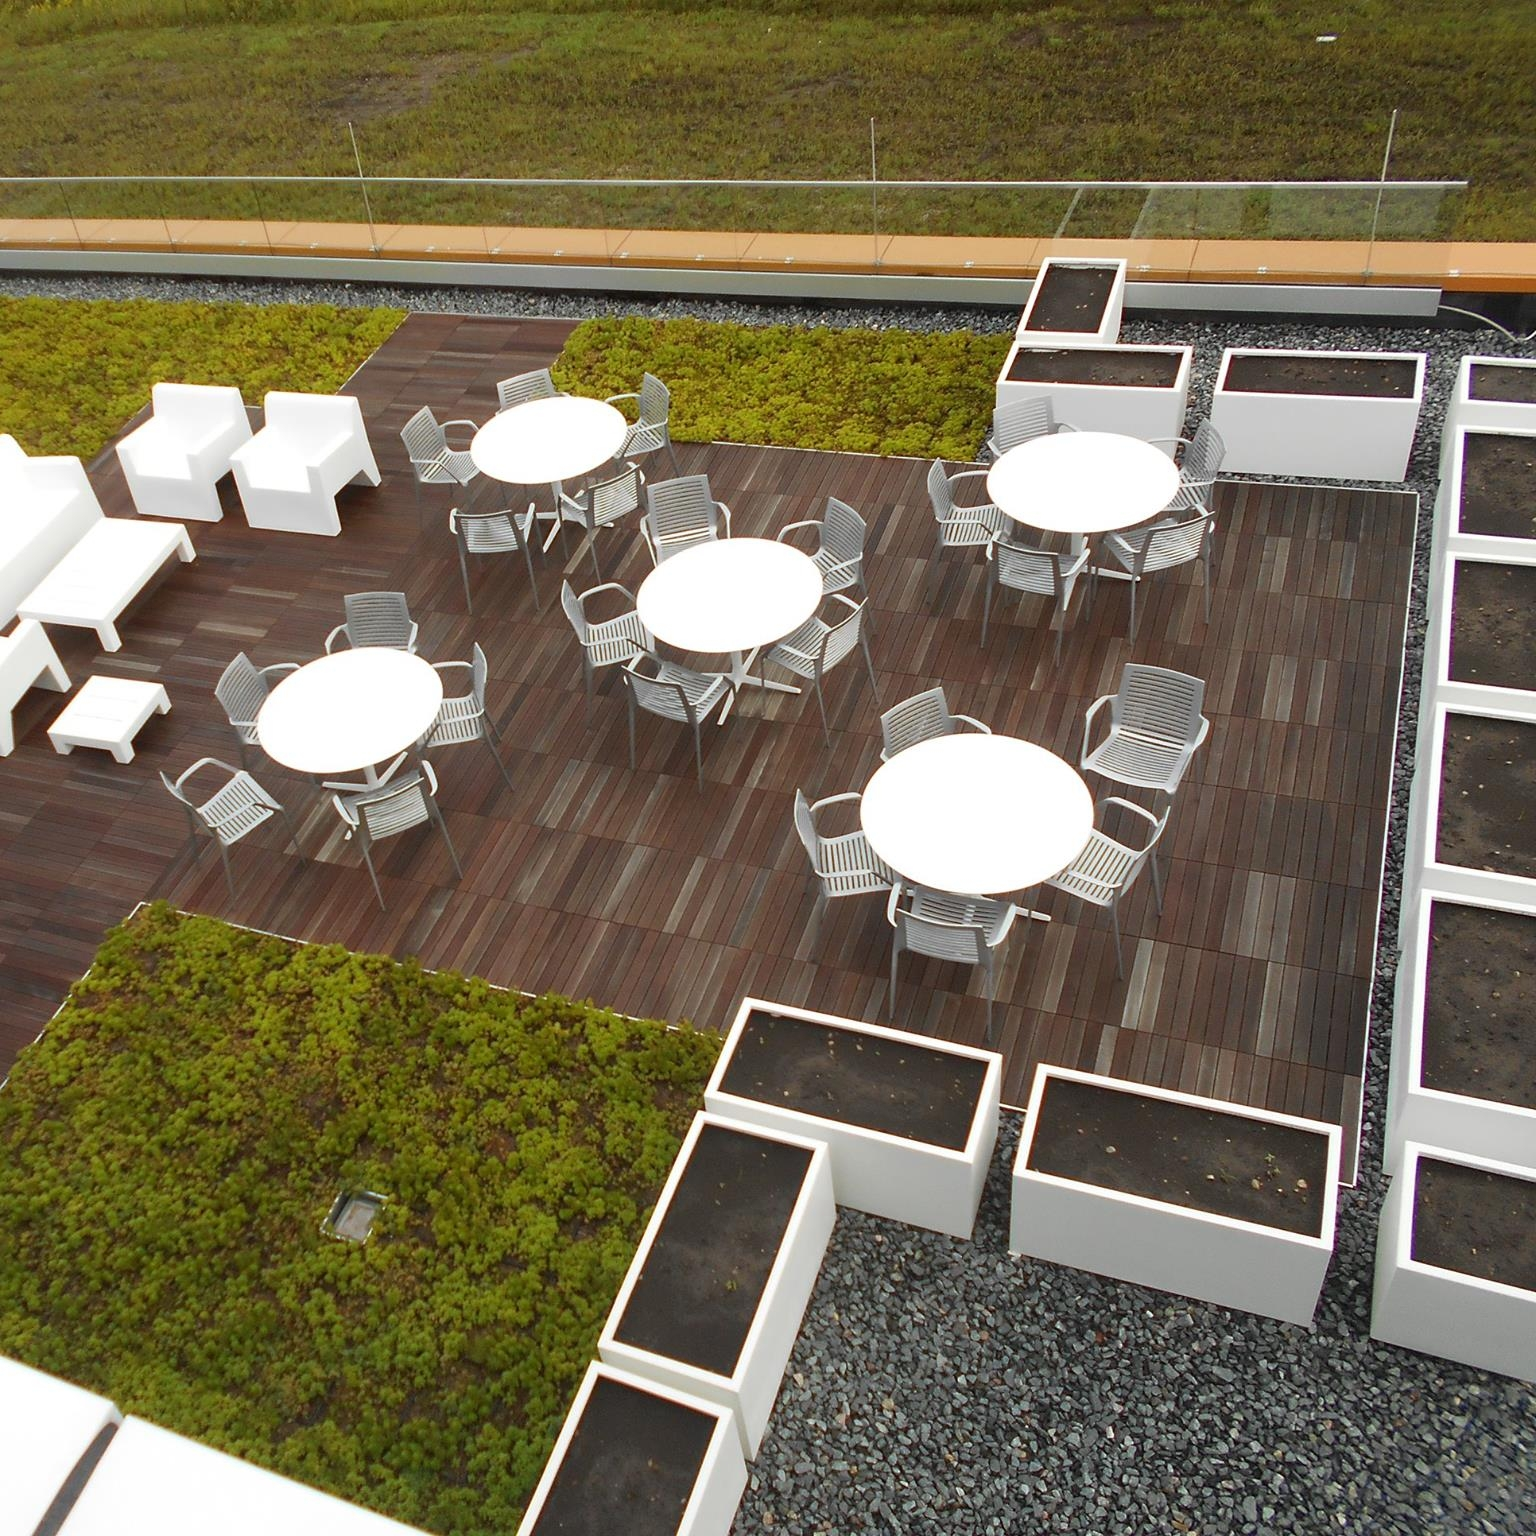 Brockway-Green-Sustainability-Conservation-Green-Rooftops